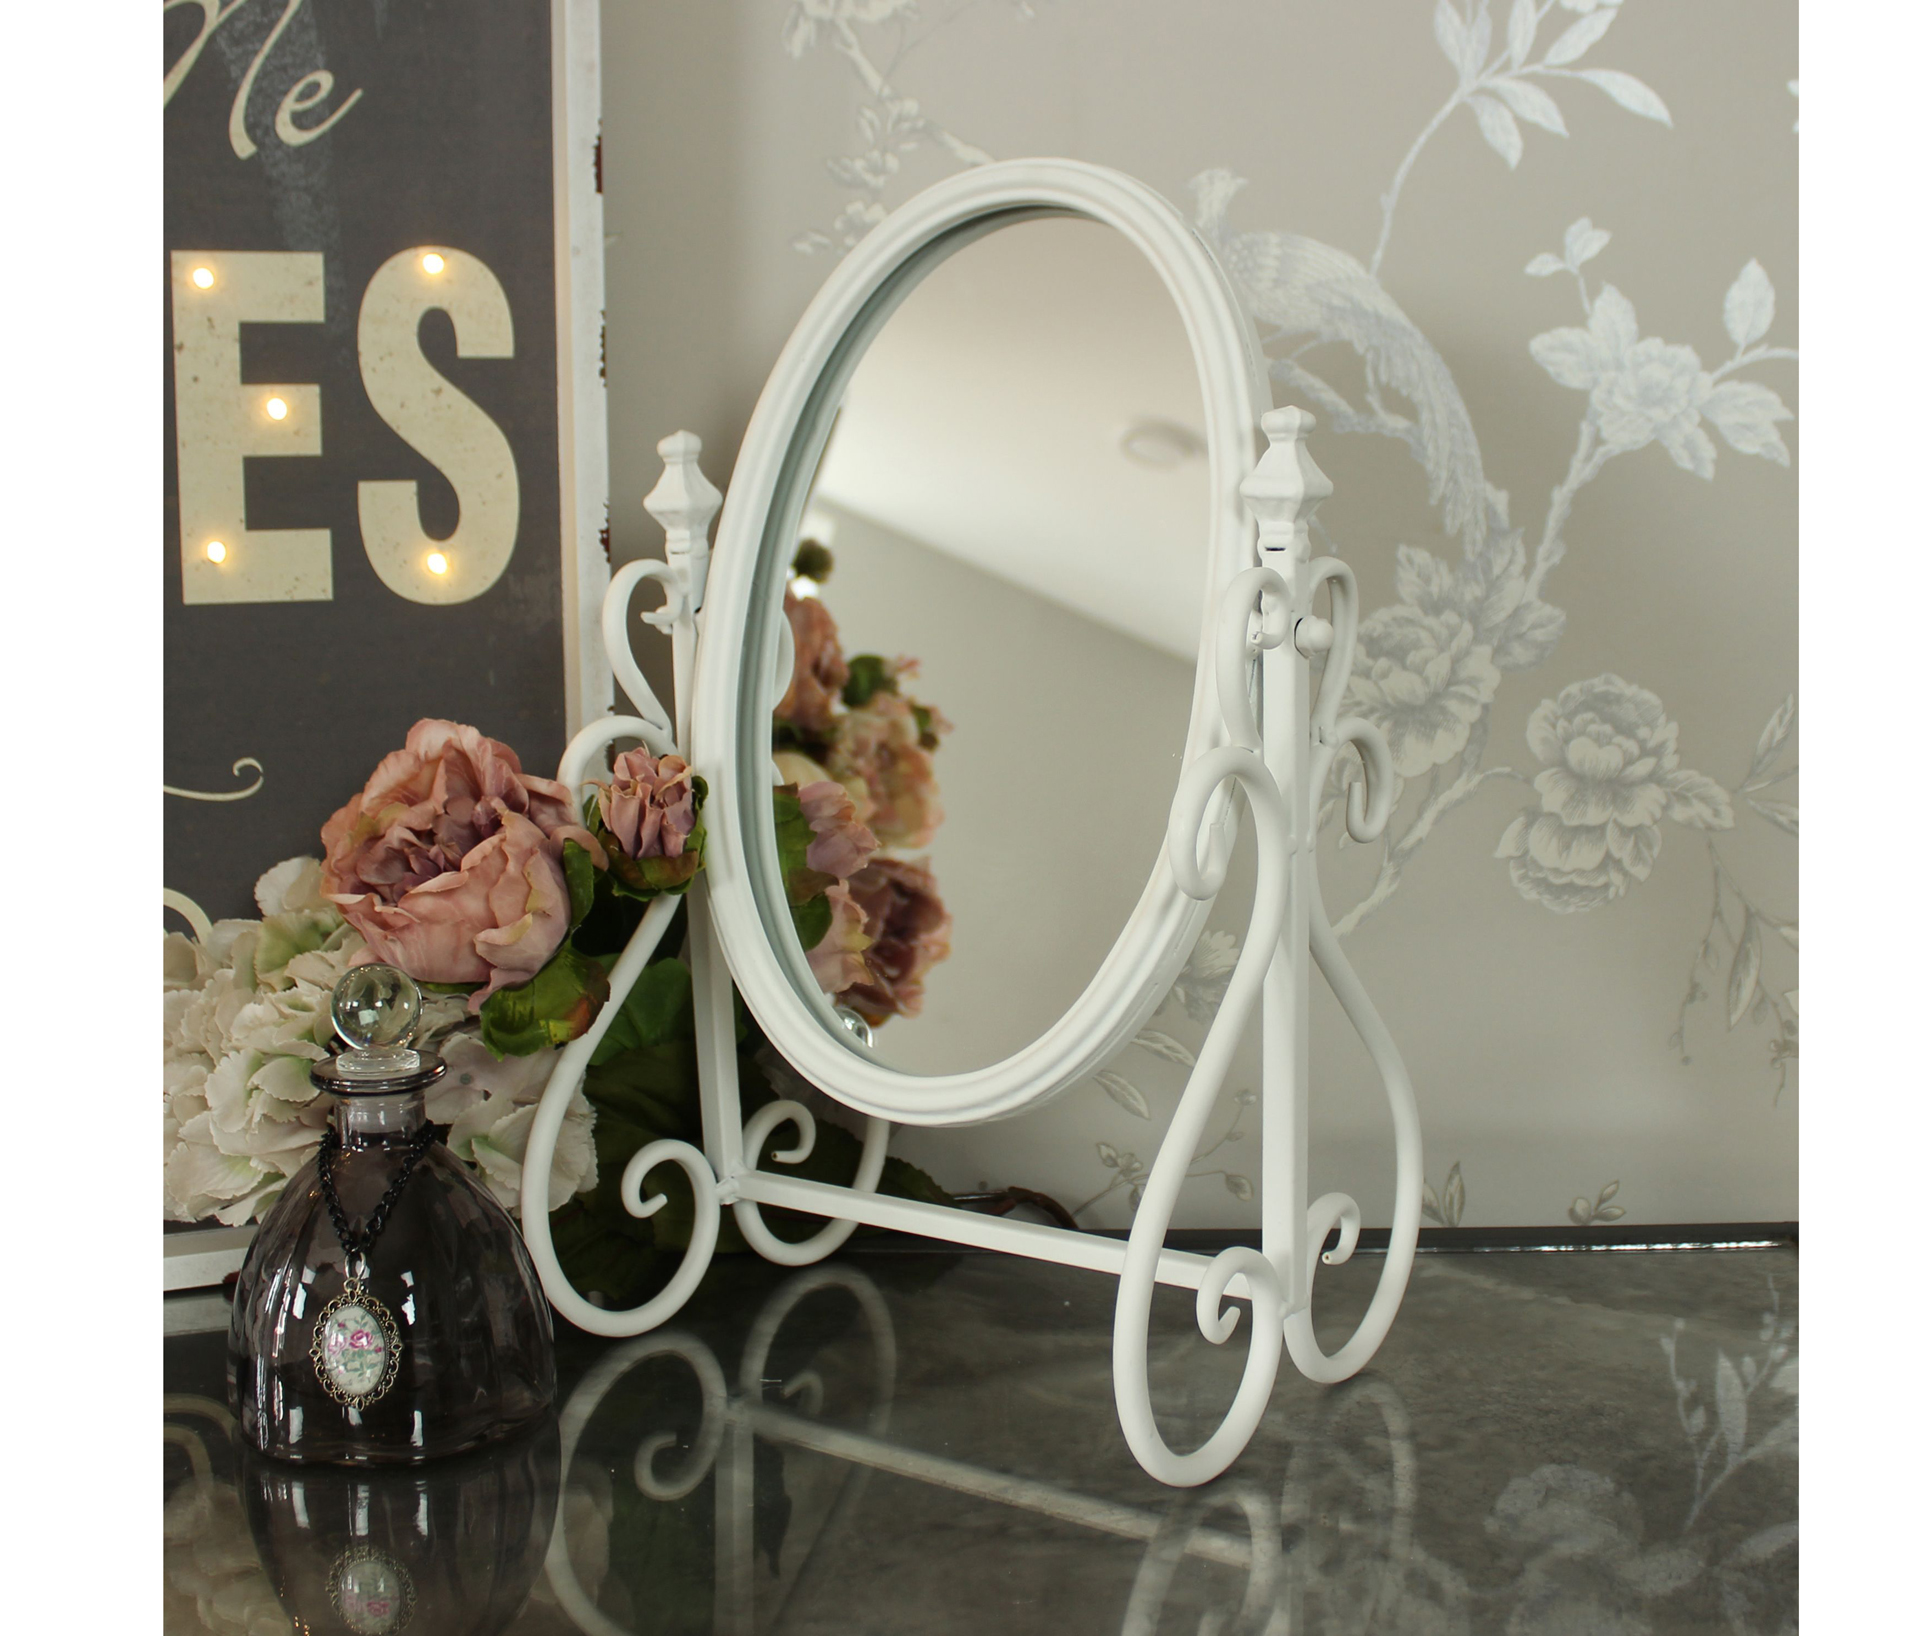 Ivory Metal Swing Mirror, £32.95, Melody Maison